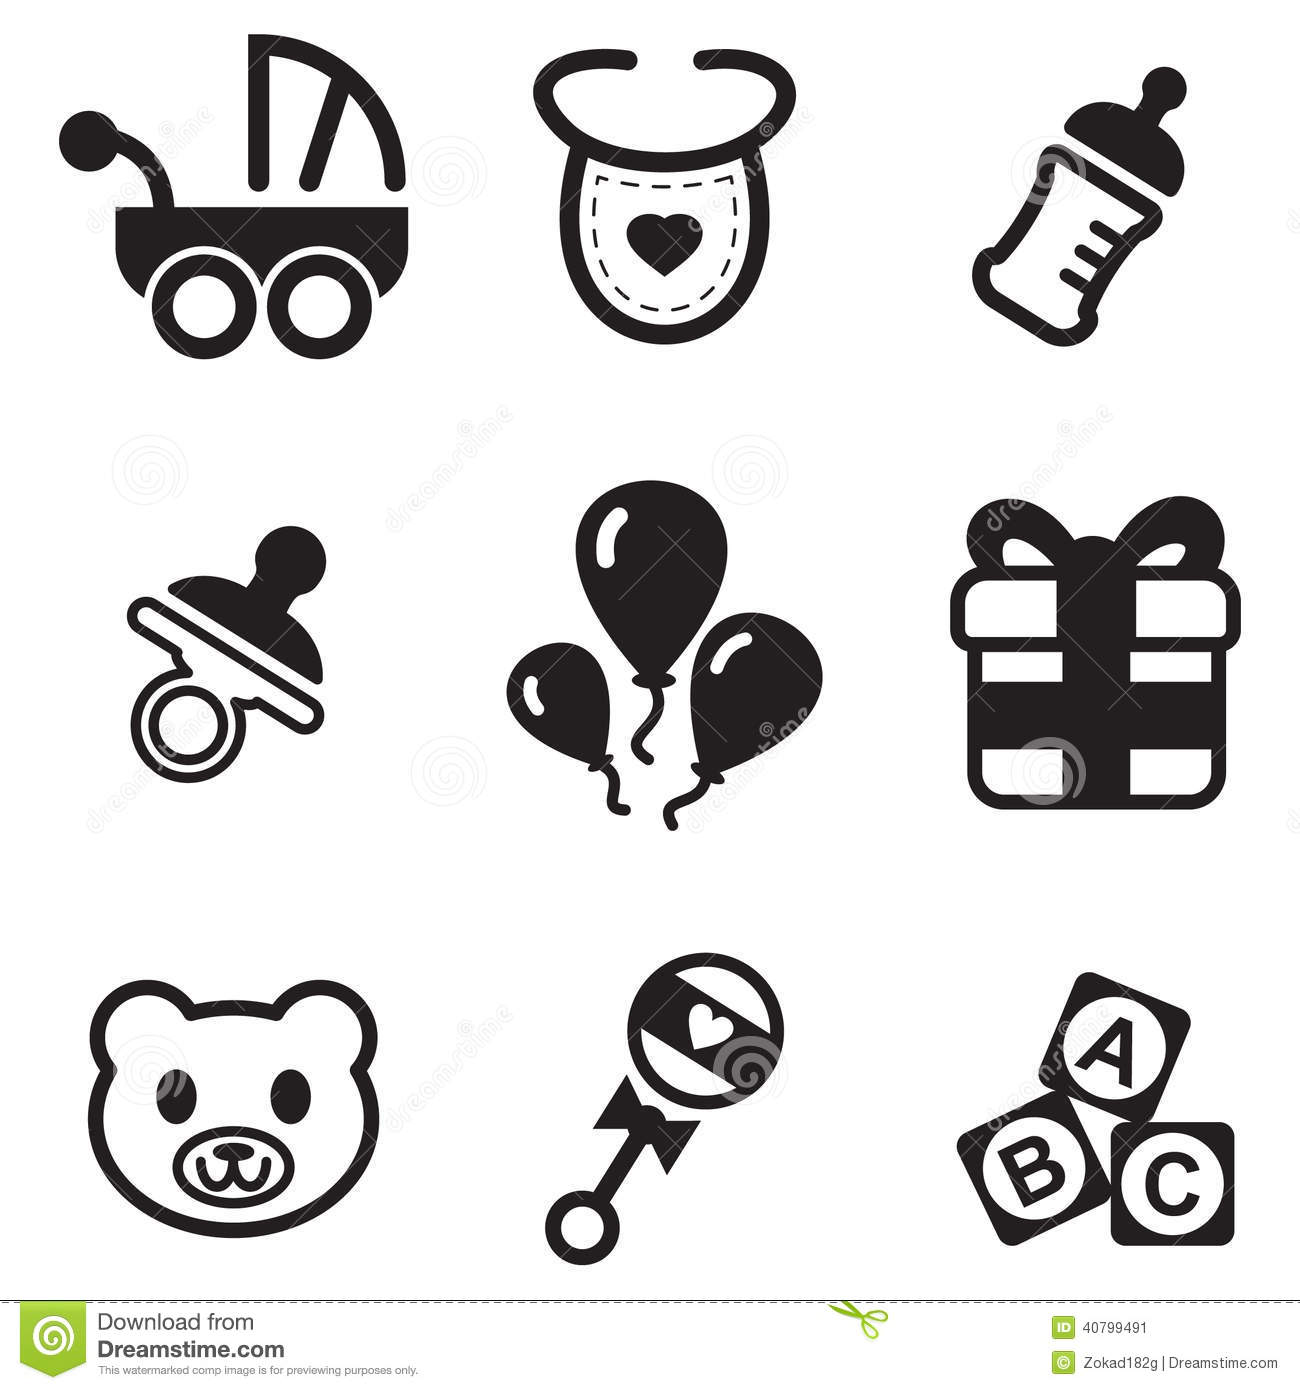 Beb C3 A9 Bosquejo Chupete 10373884 besides Black And White Skull Tattoo Designs together with Stock Images Baby Birth Icons Infant Icon Set Image35237534 further Teddy Bear Clipart Heart additionally 453577263. on baby bottle clip art